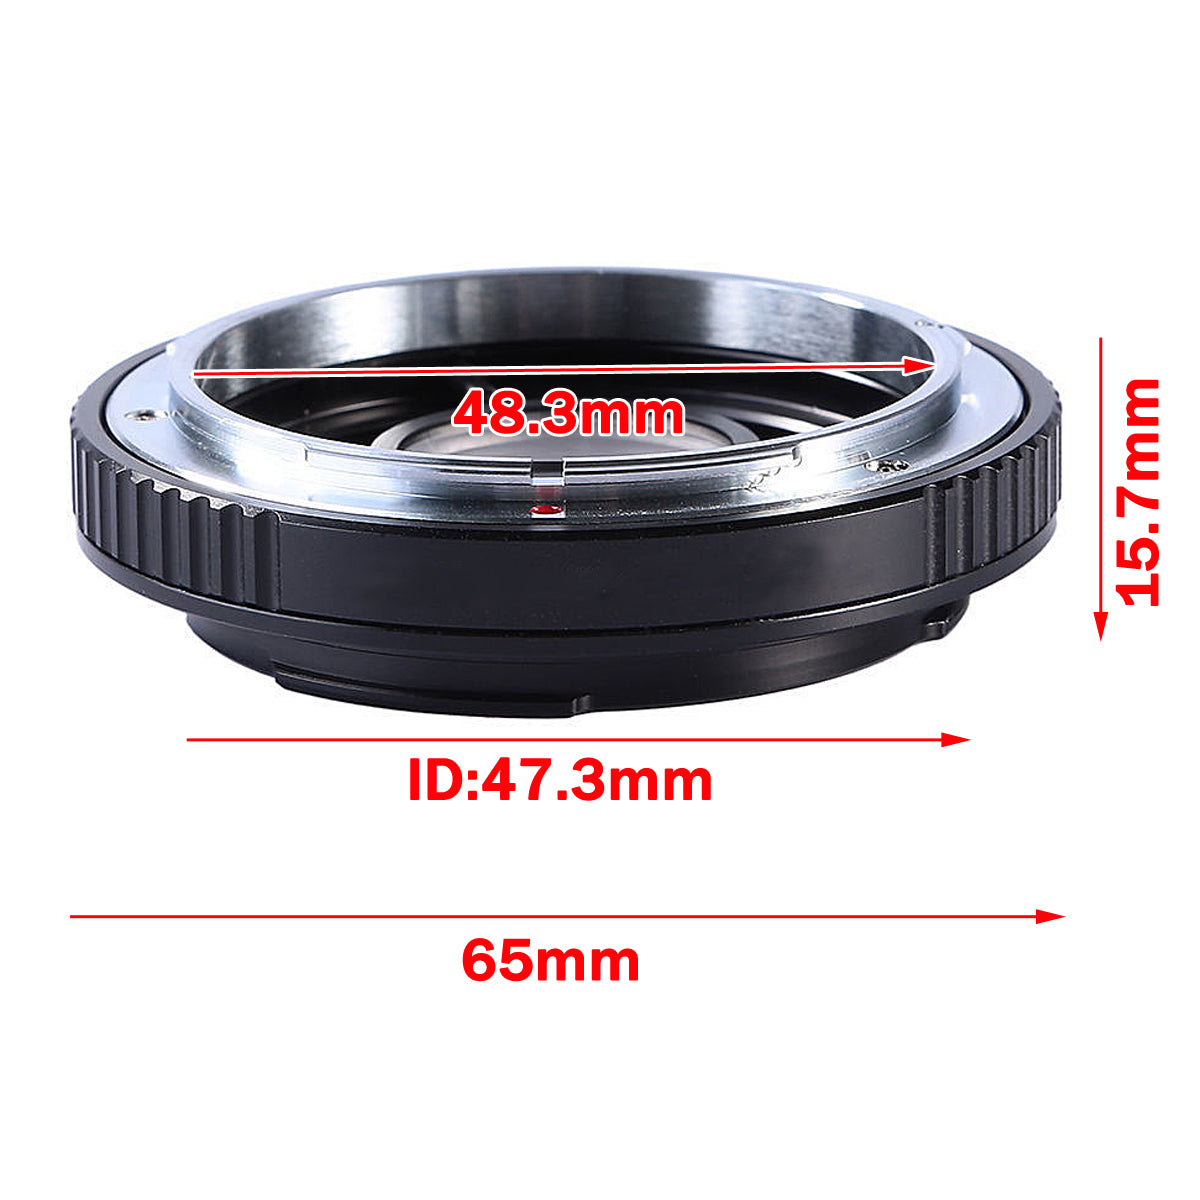 FD-EOS Mount Adapter Ring No Glass For Canon FD Lens To EOS EF